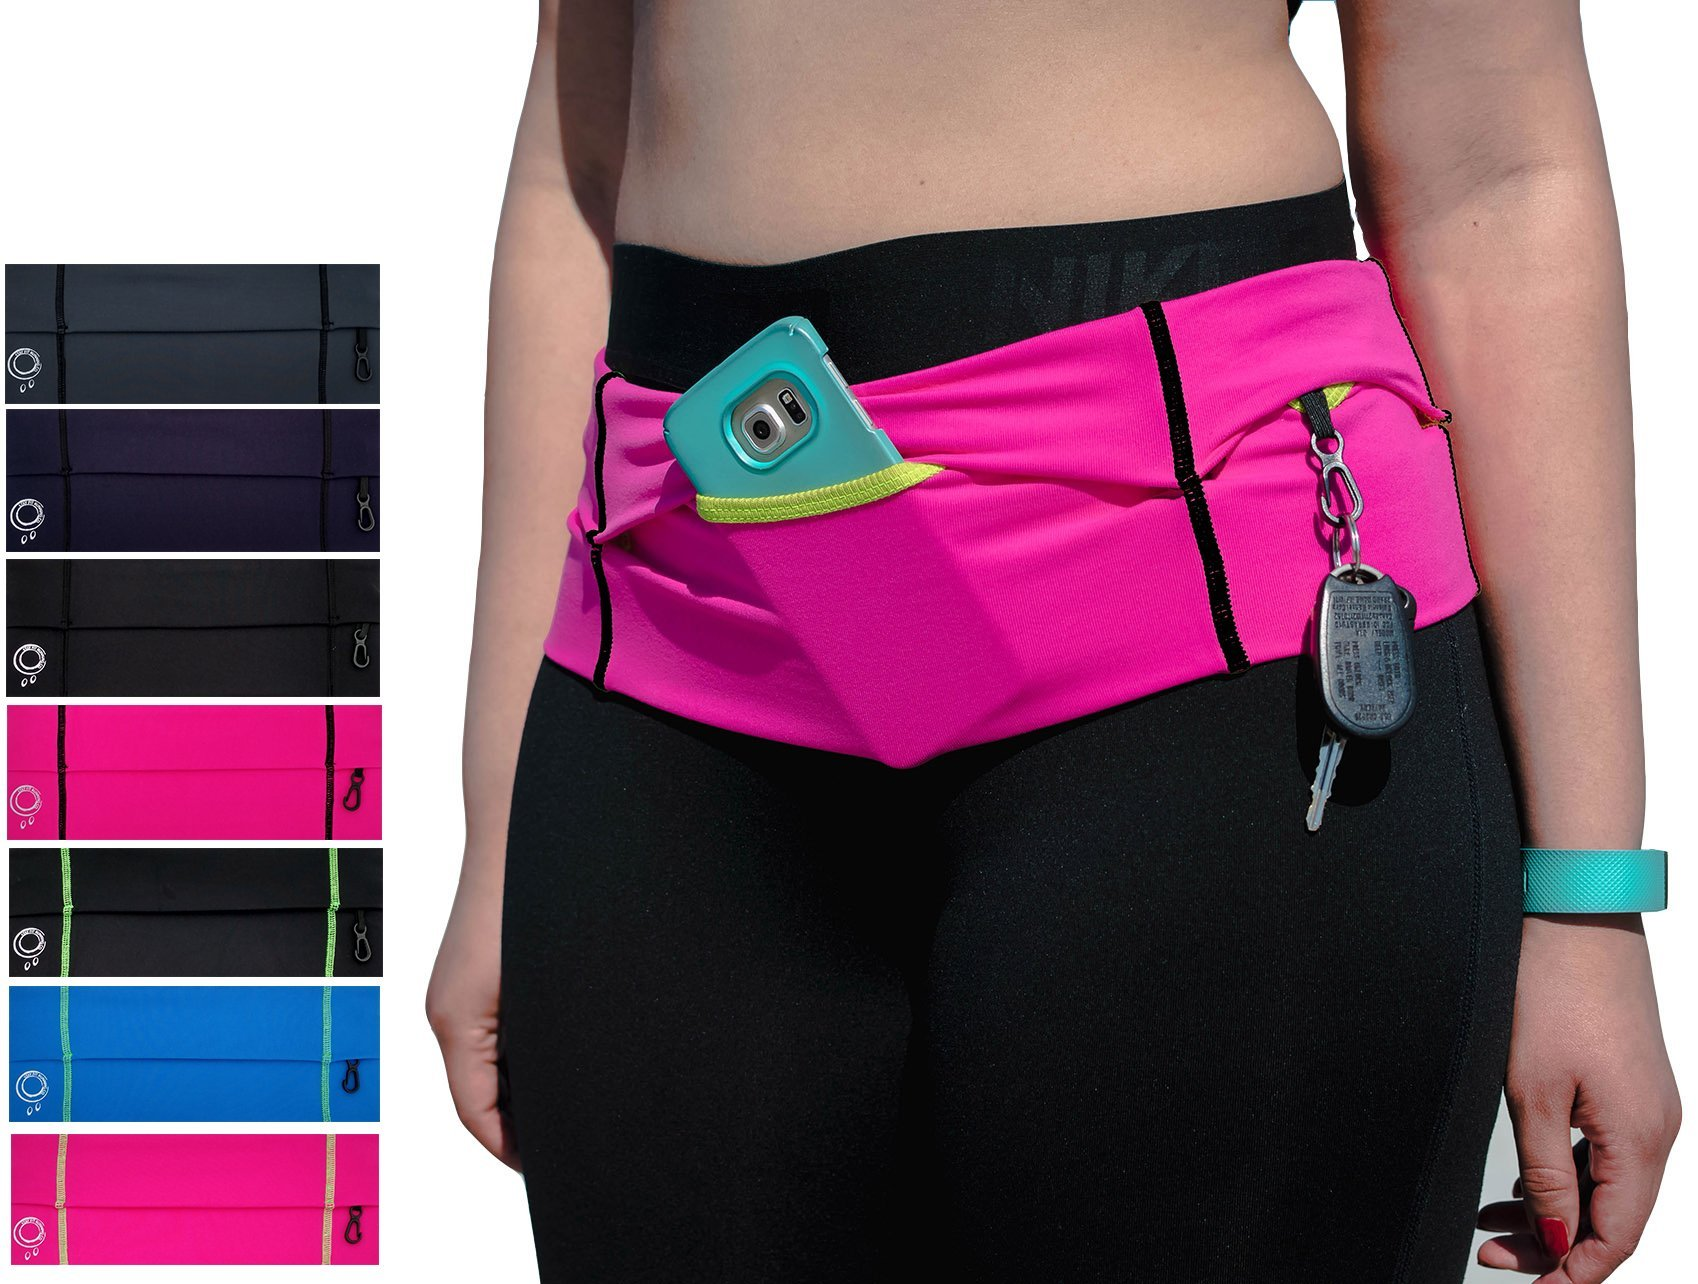 Stay Fit Running Belt. Made to Meet The demanding Needs of The serious Long Distance Runner! Made for Women! Made in USA! (Gray/Black, X-Small)